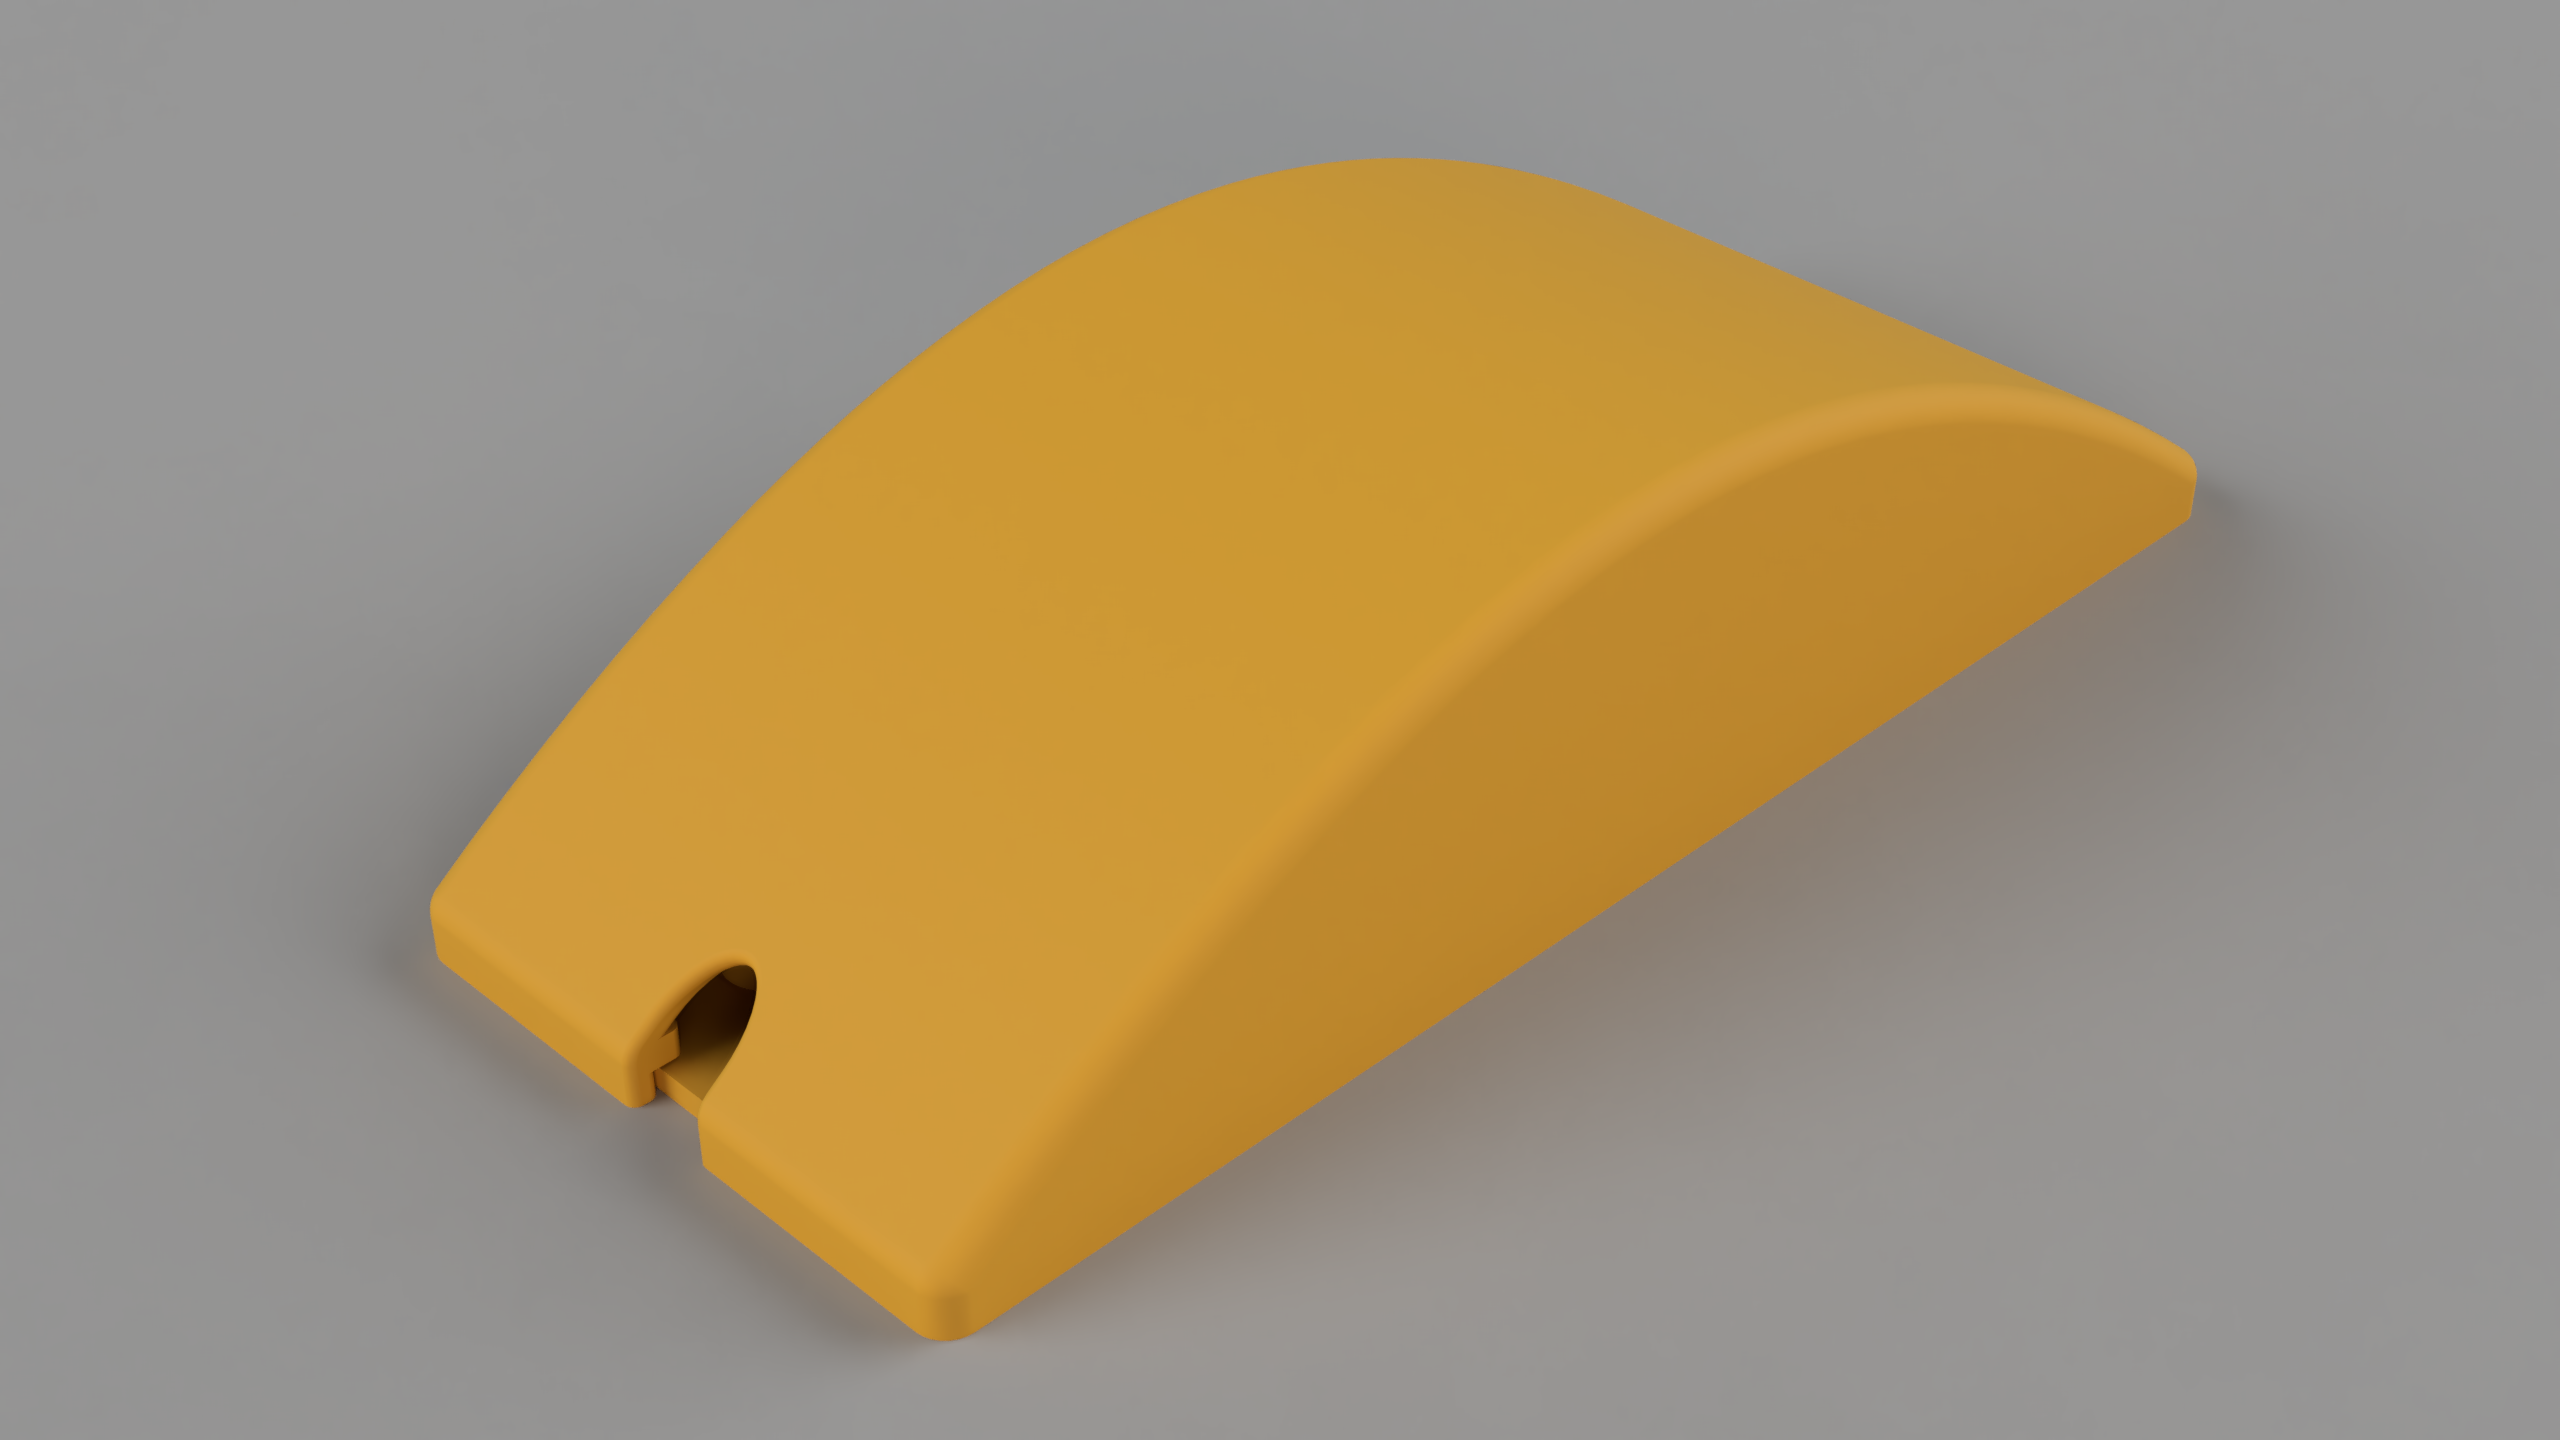 topRightOpaque.png Download free STL file Wemos D1 Mini Plug 01 • 3D print template, Wilko